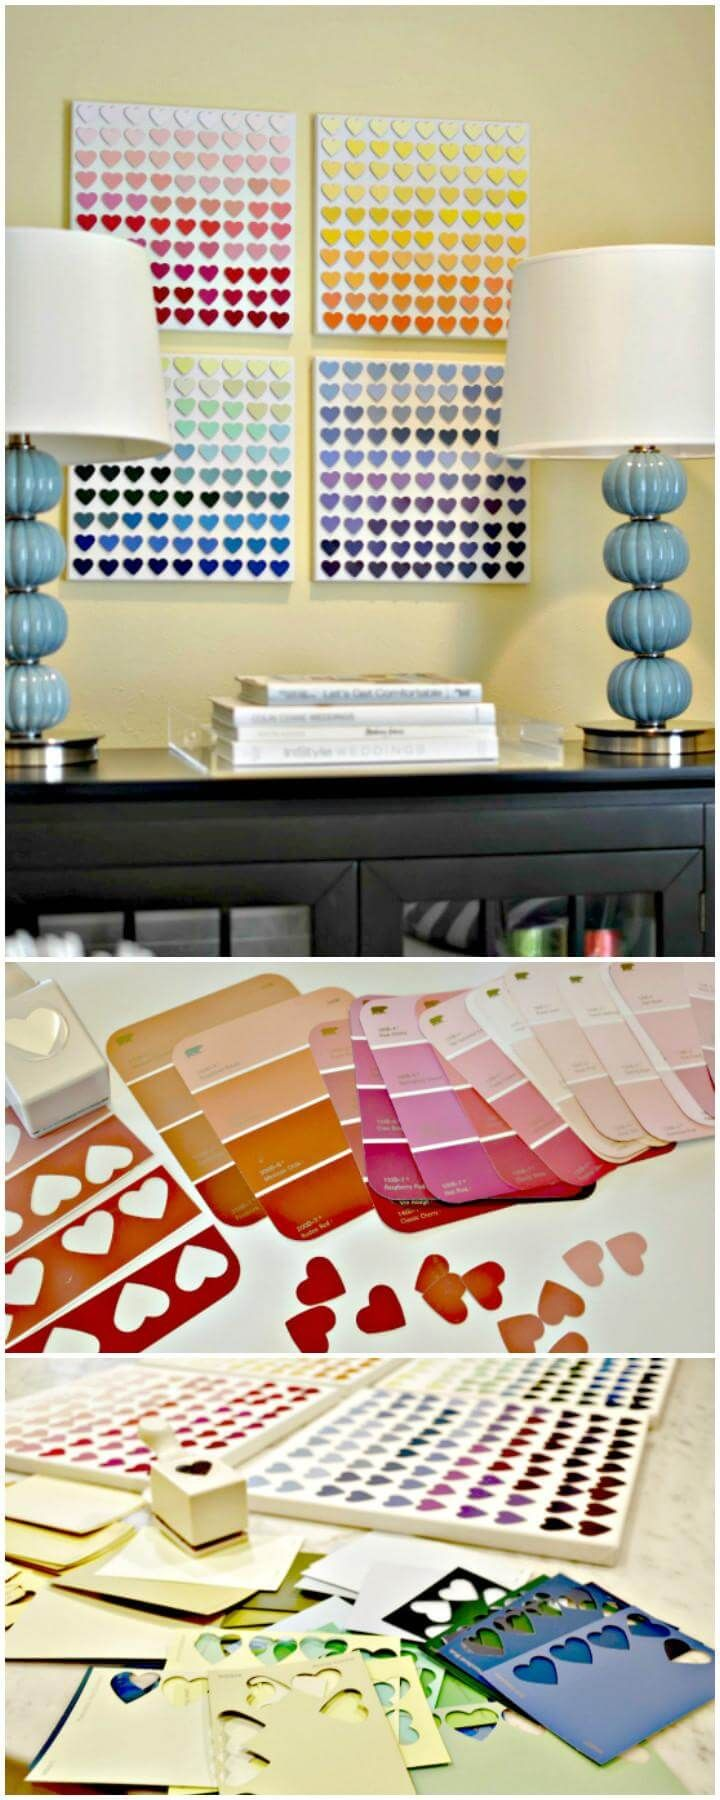 200 Best DIY Craft Ideas and Projects for Teen Girls images